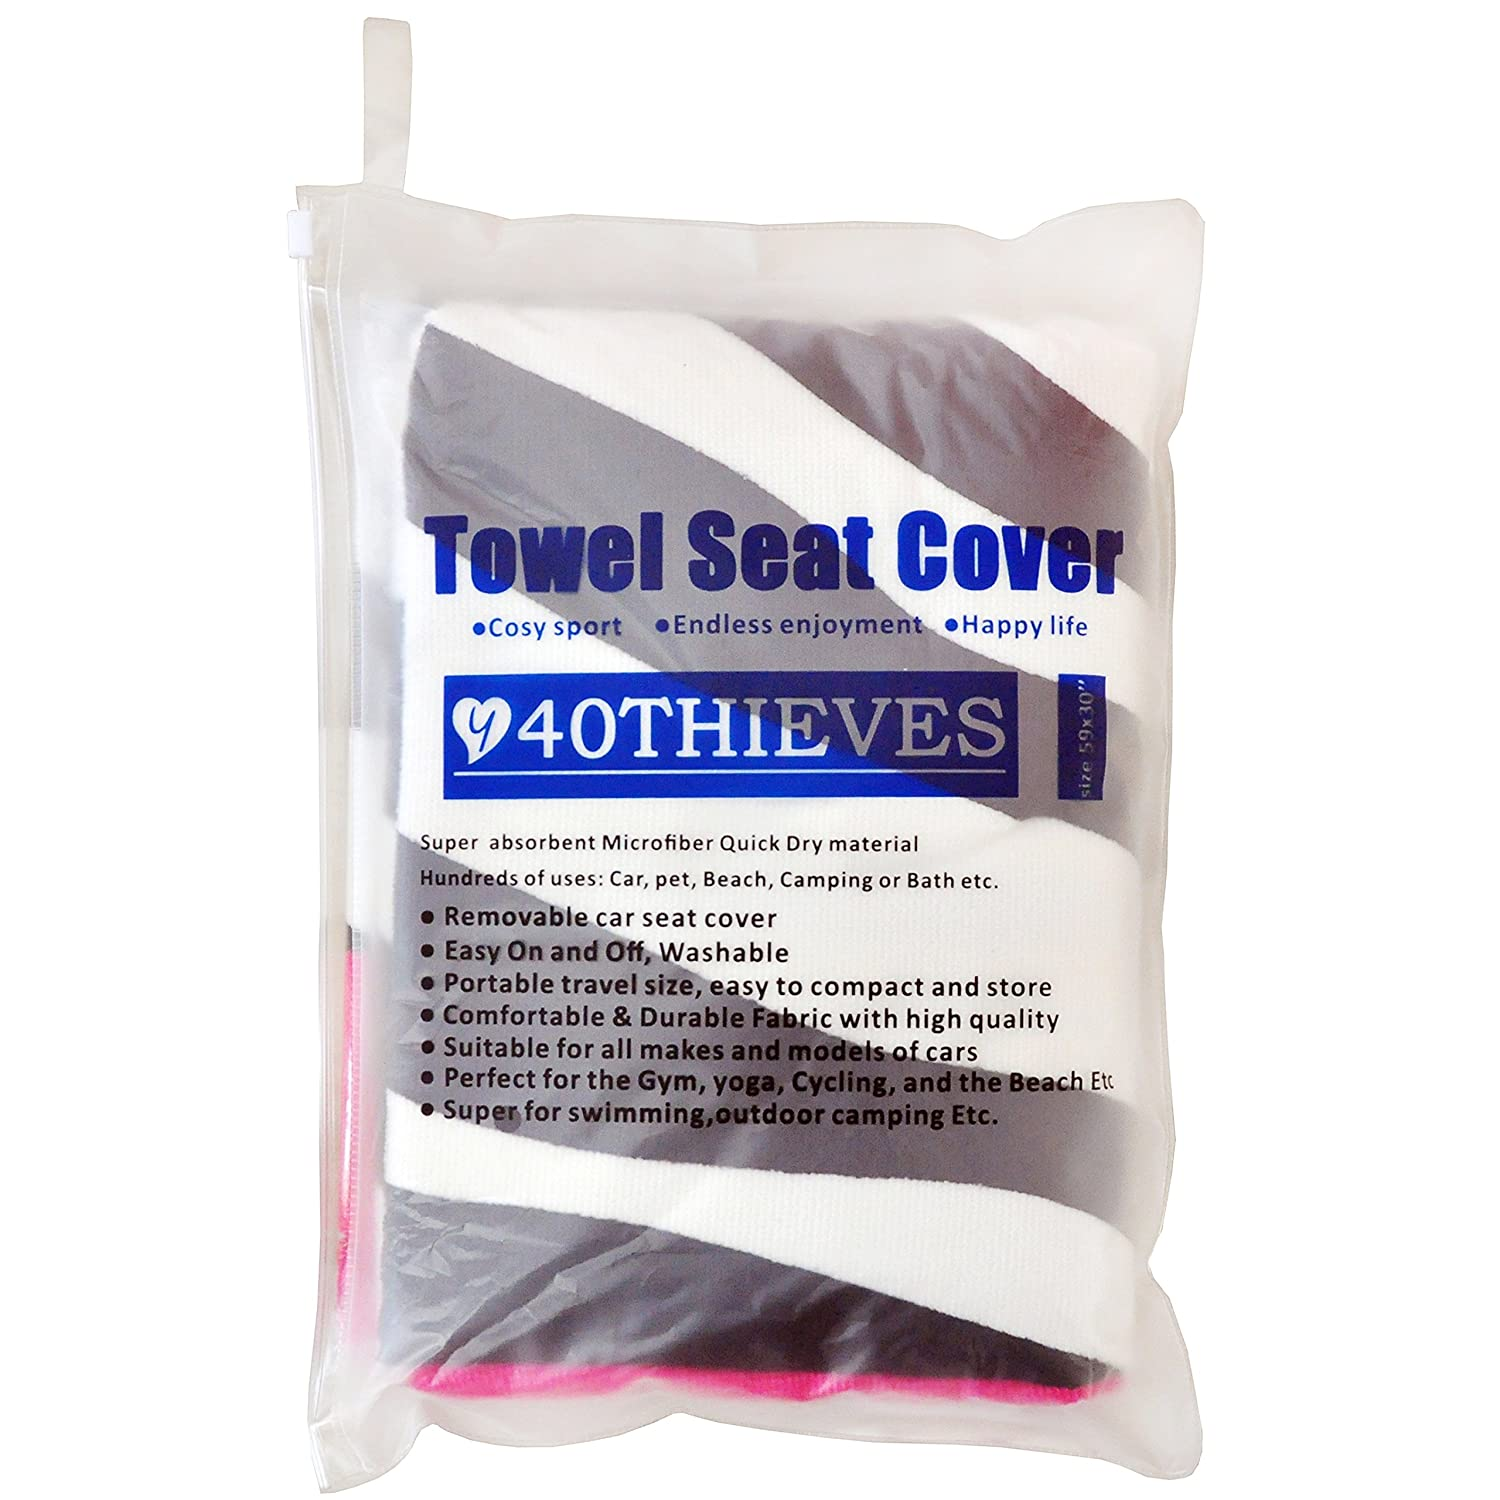 Runs Y 40 THIEVES Removable Sweat Towel Protect Front Bucket Seat Free for Cars Truck SUV After Gym Swimming Yoga Biking Star Stripe Surfing /& Beach Trips